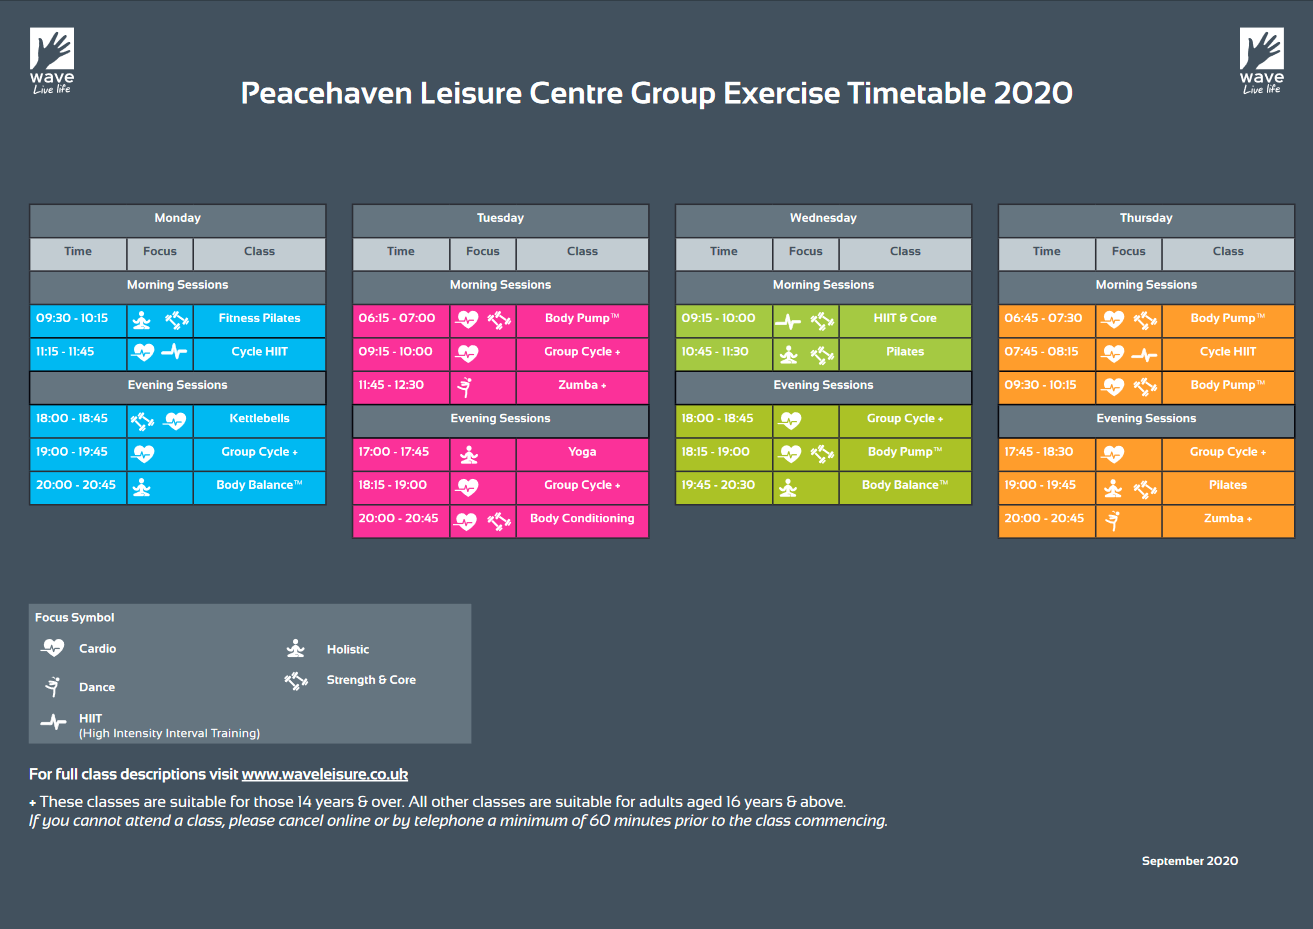 Peacehaven leisure centre timetable Monday to Thursday. PDF available.